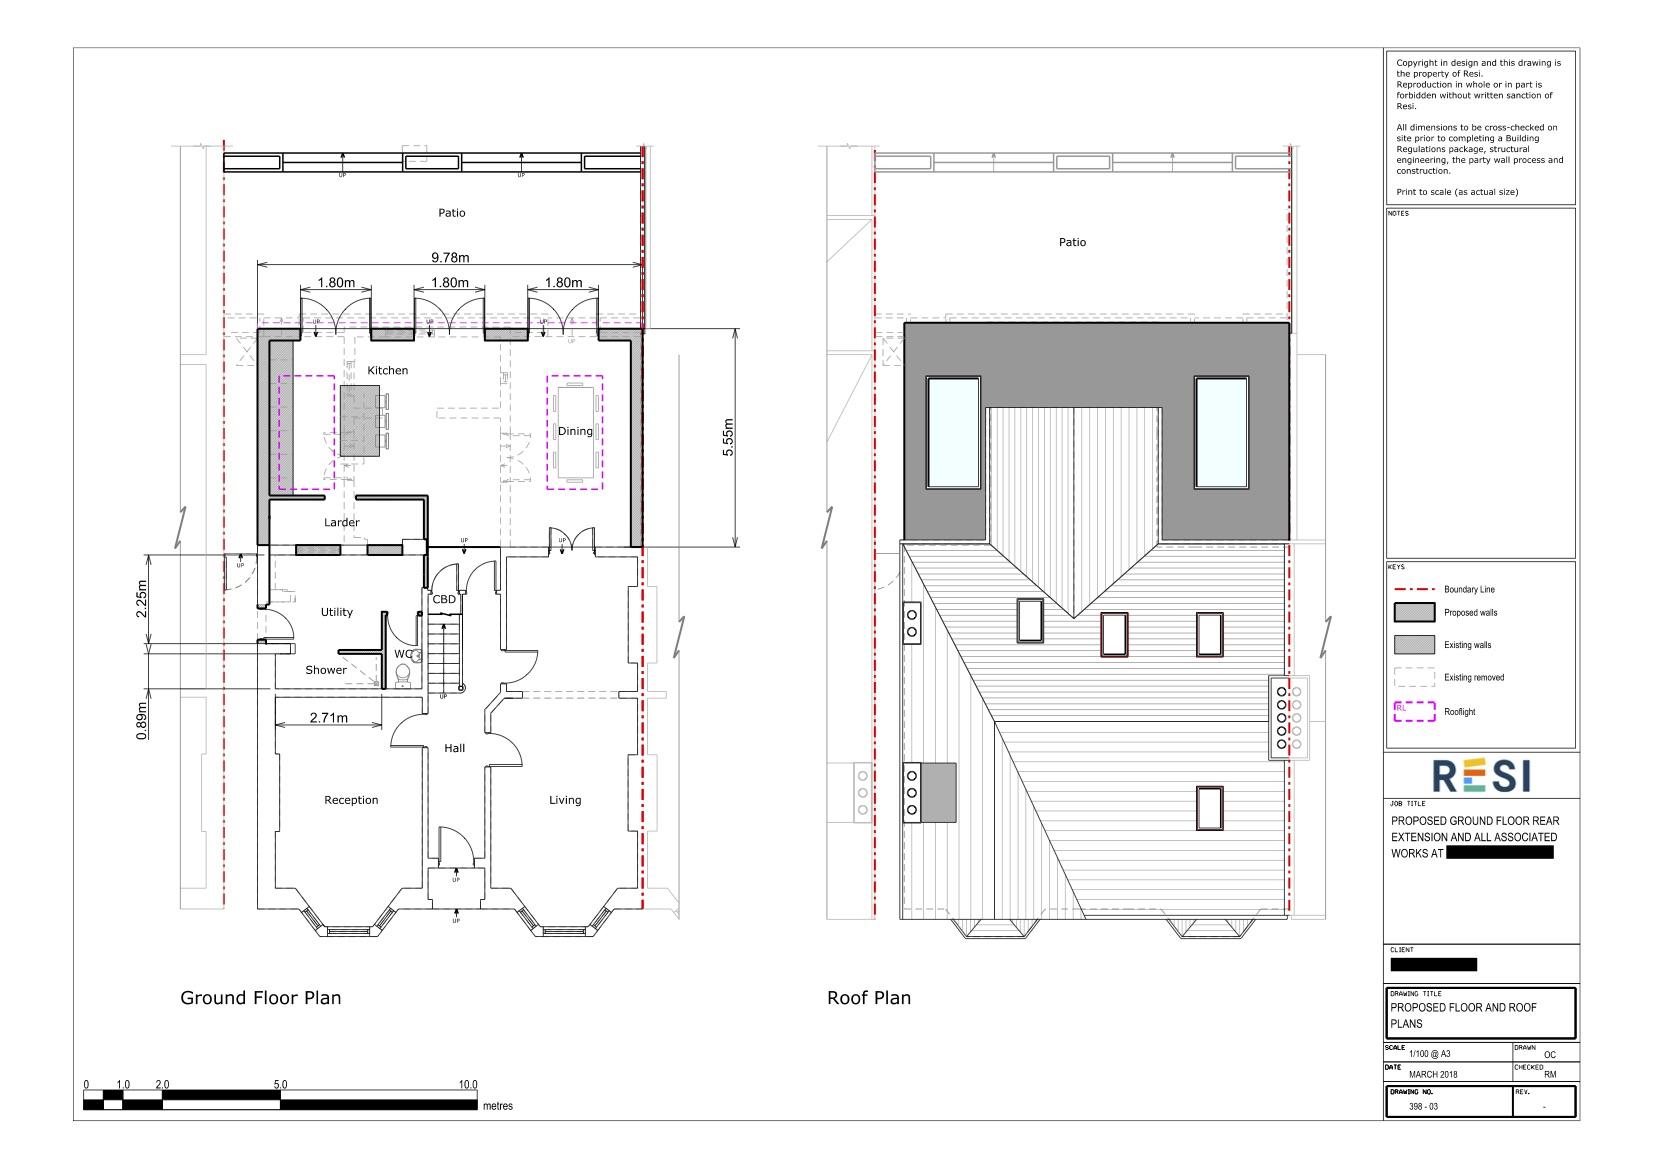 Architectural drawings 19   ground floor and roof plans